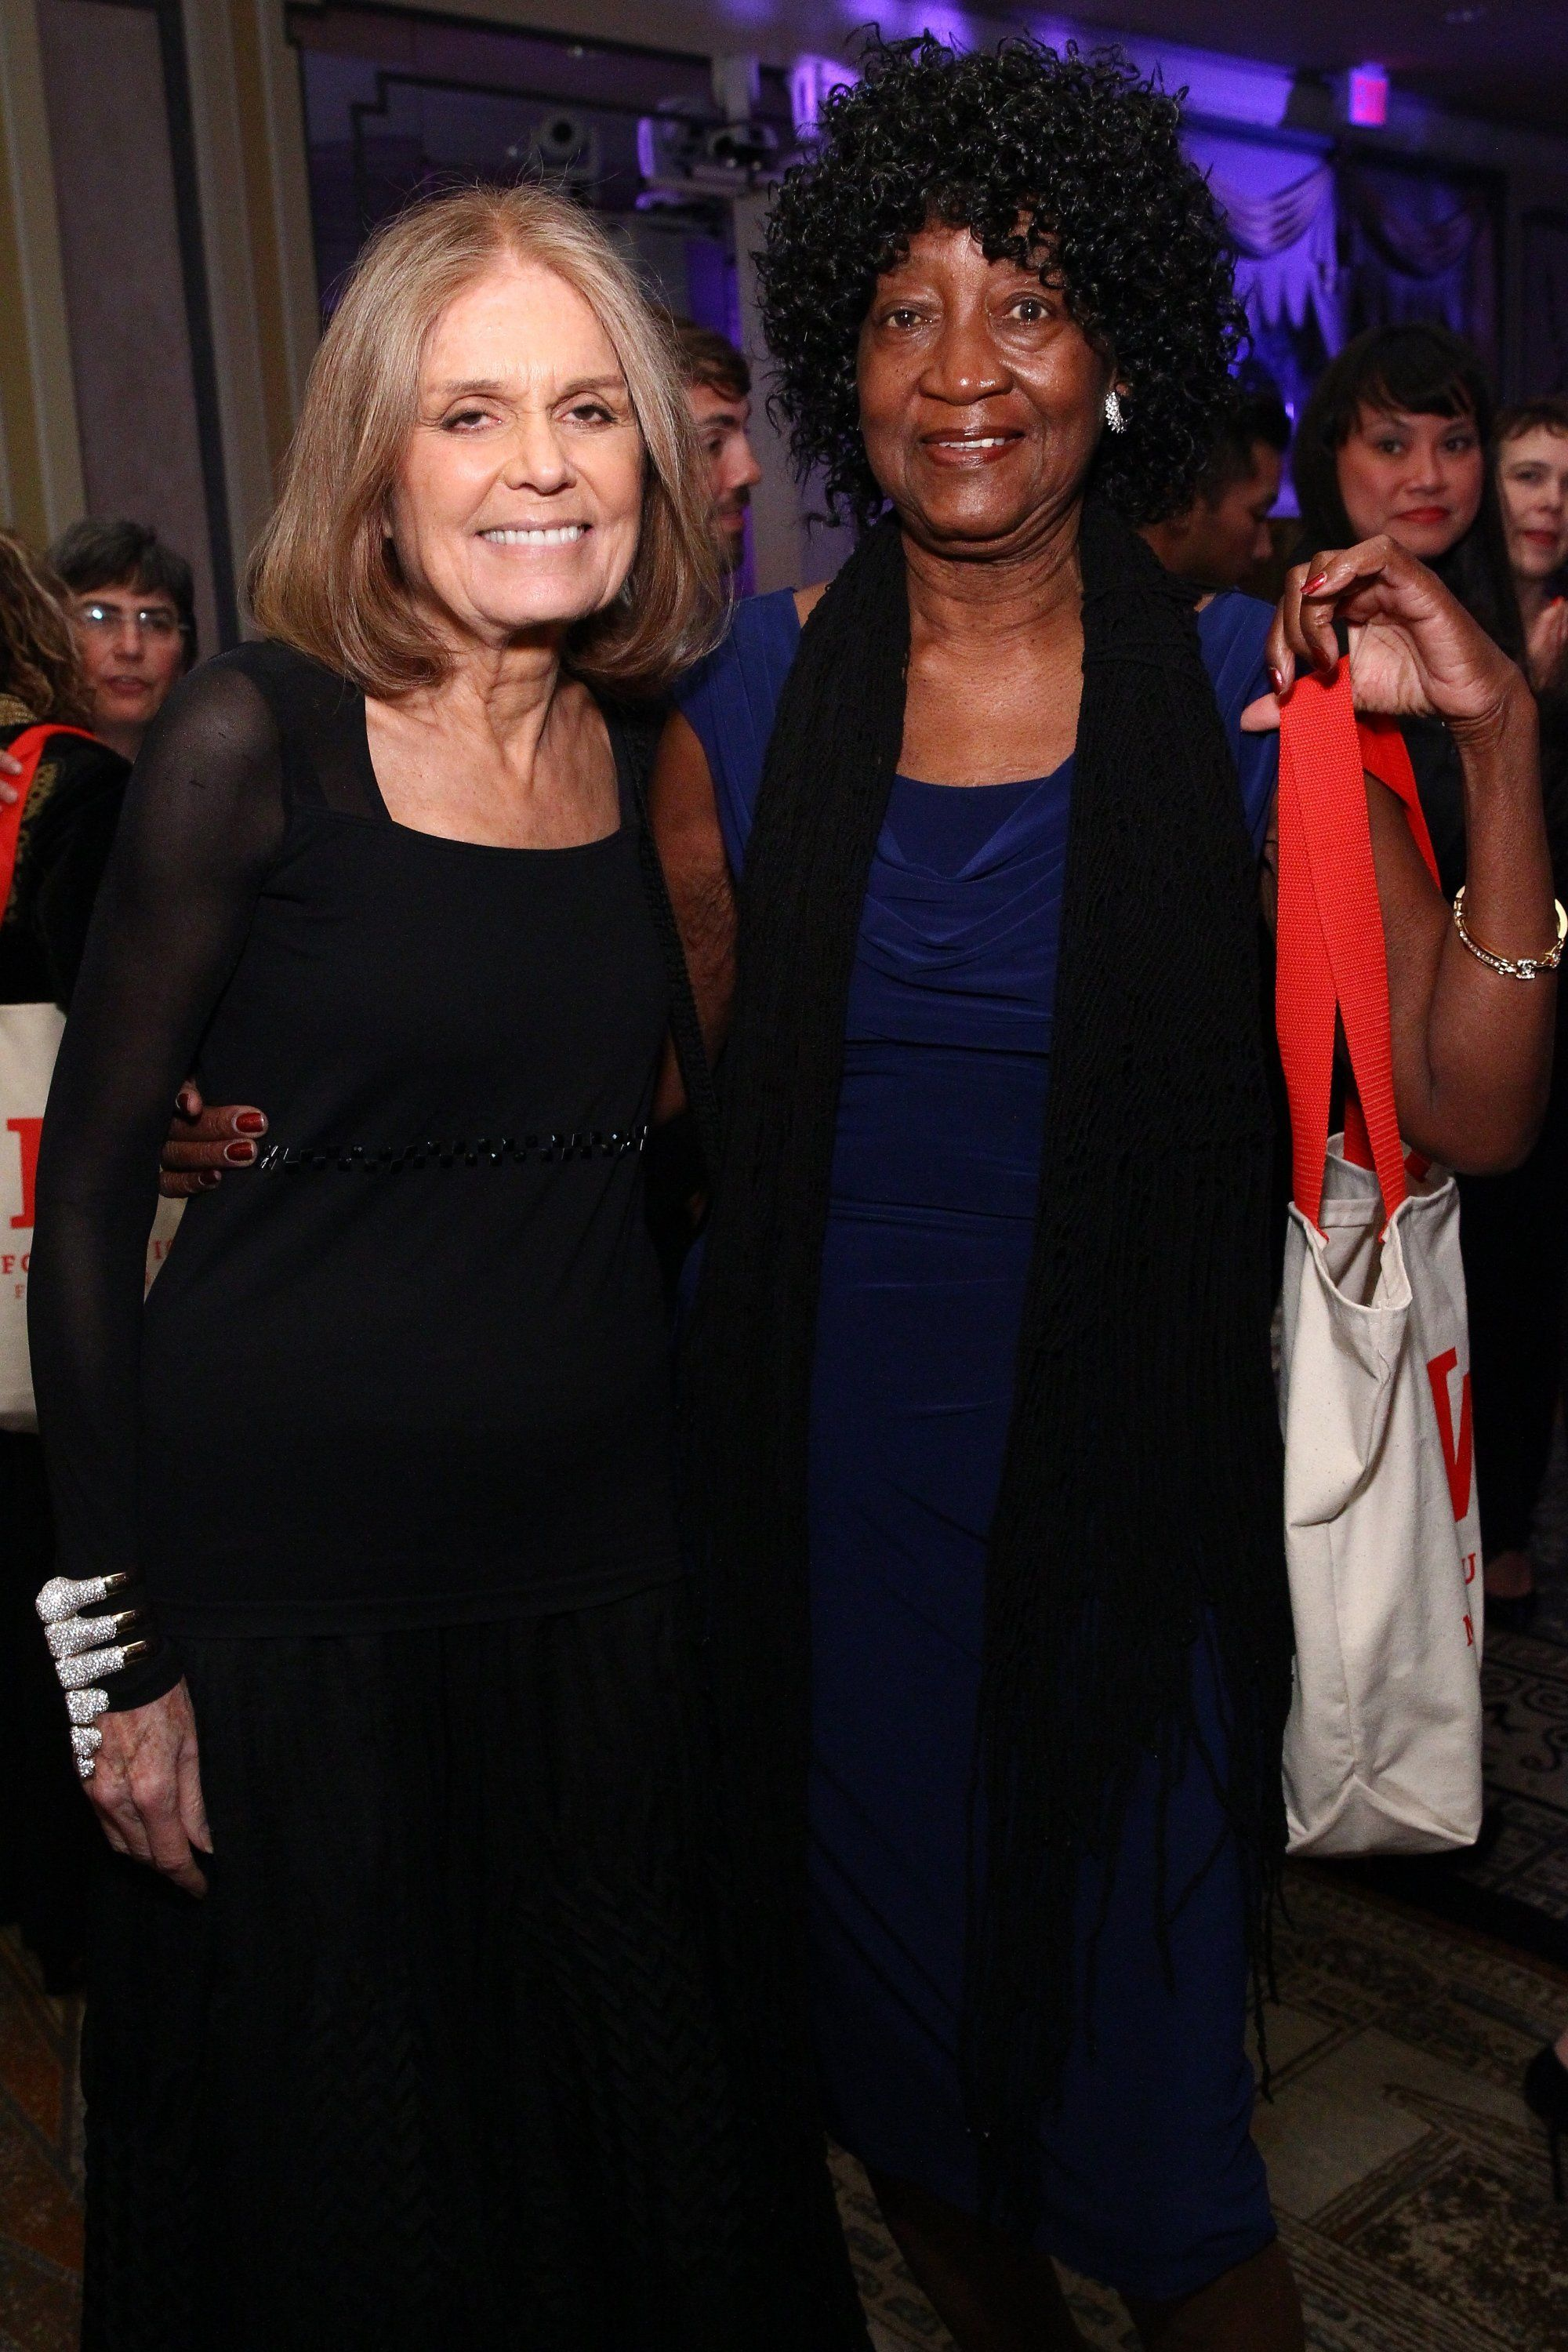 Gloria Steinem and Dorothy Pitman Hughes attend the Ms. Foundation For Women 2016 Gloria Awards Gala on April 27, 2016, in New York City.